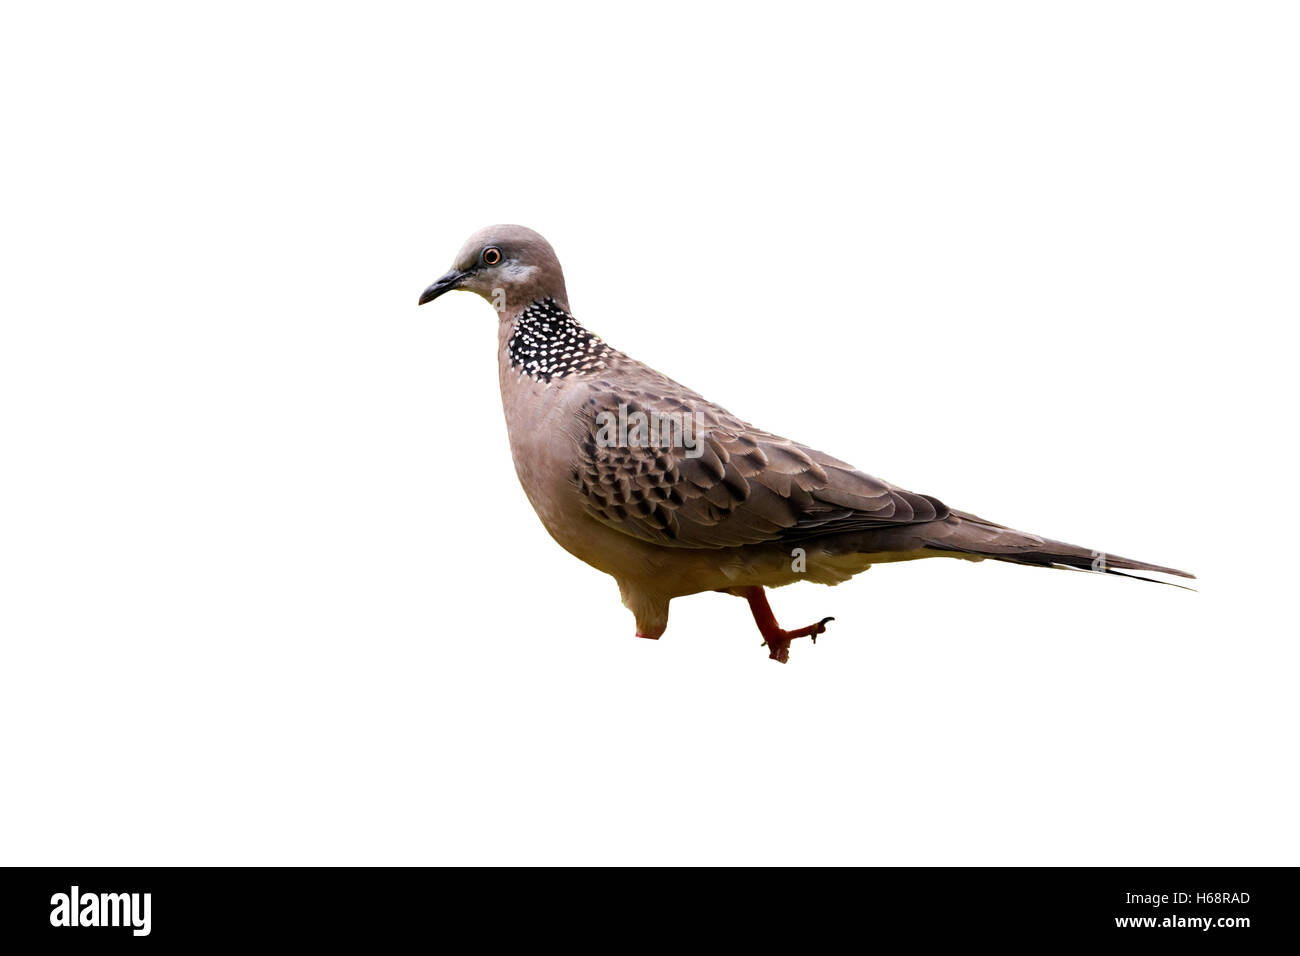 Spotted dove, Streptopelia chinensis, single bird on grass, Indonesia, March 2011 - Stock Image